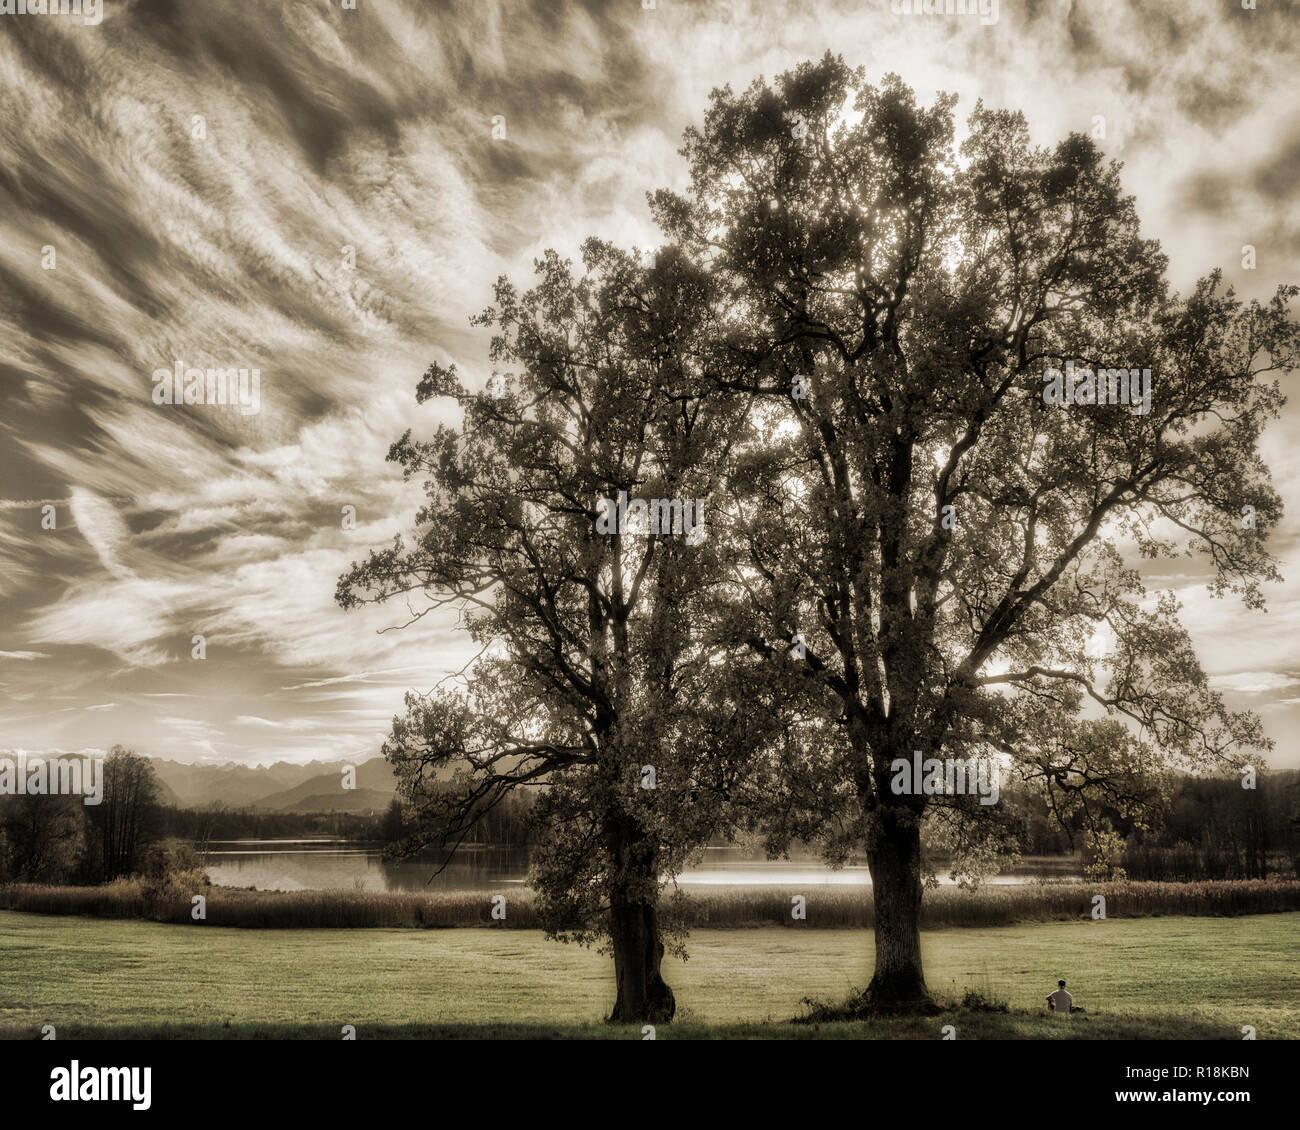 PHOTO ART: Tranquil scene at the Ostersee (Lake) near Iffeldorf, Bavaria, Germany - Stock Image